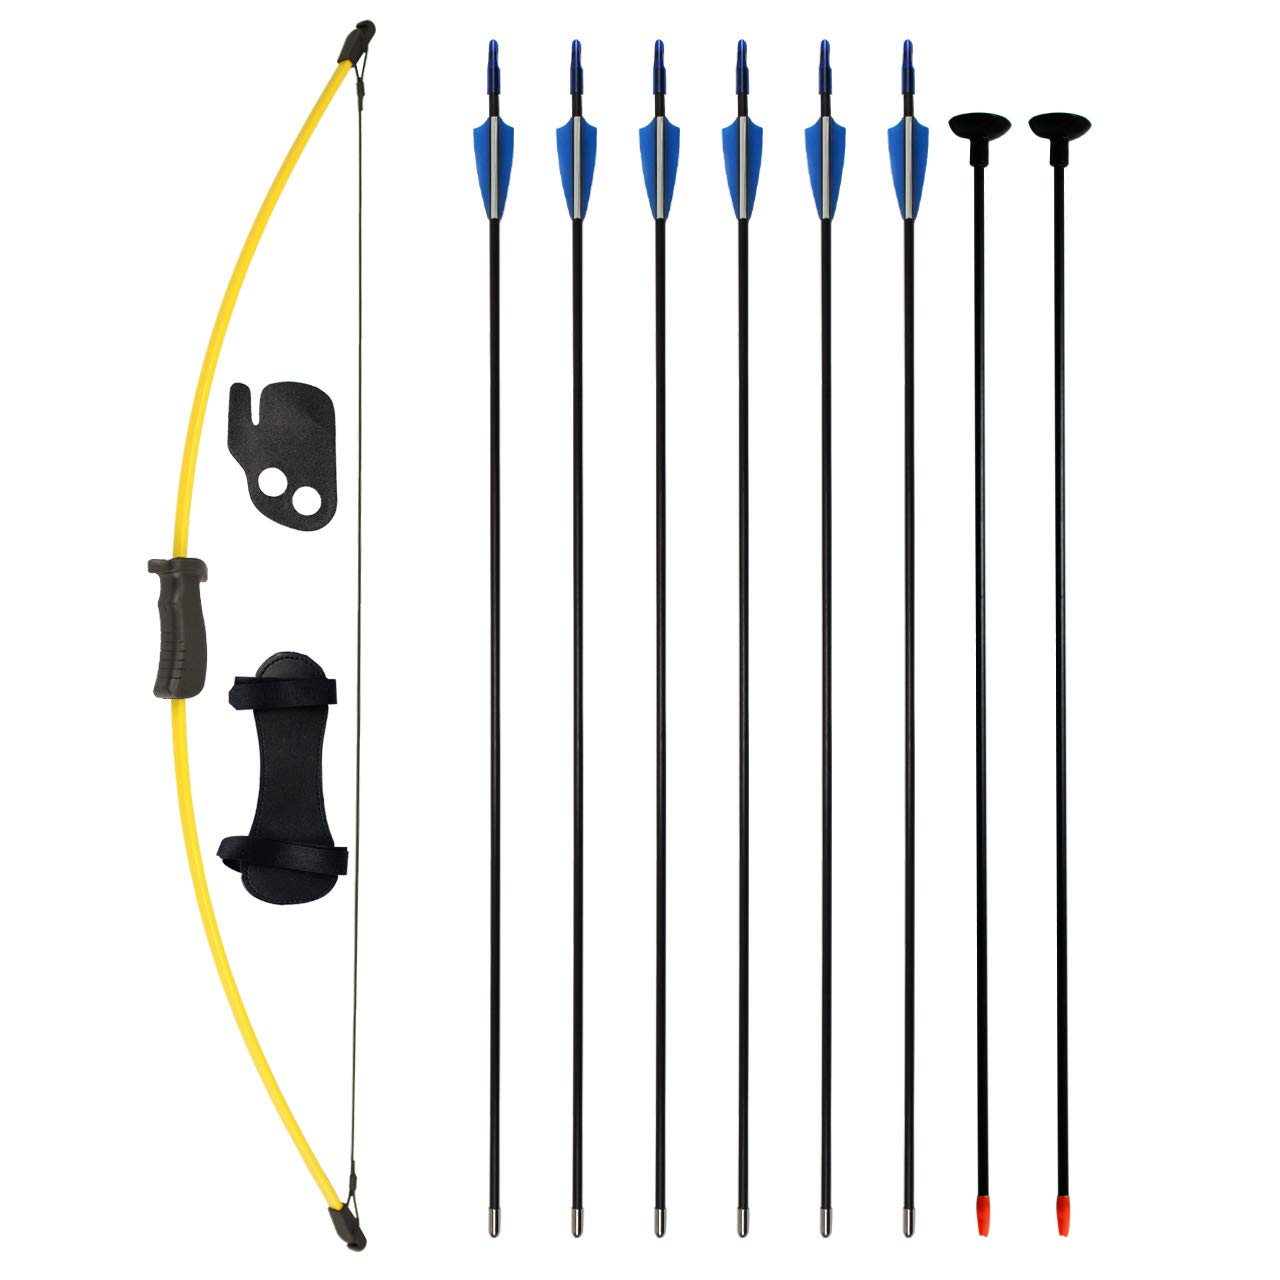 SinoArt Bow and Arrow Set for Teens Outdoor Sports Game Hunting Gift Archery Bow Set with 8 Arrows 16 Lb (Yellow)